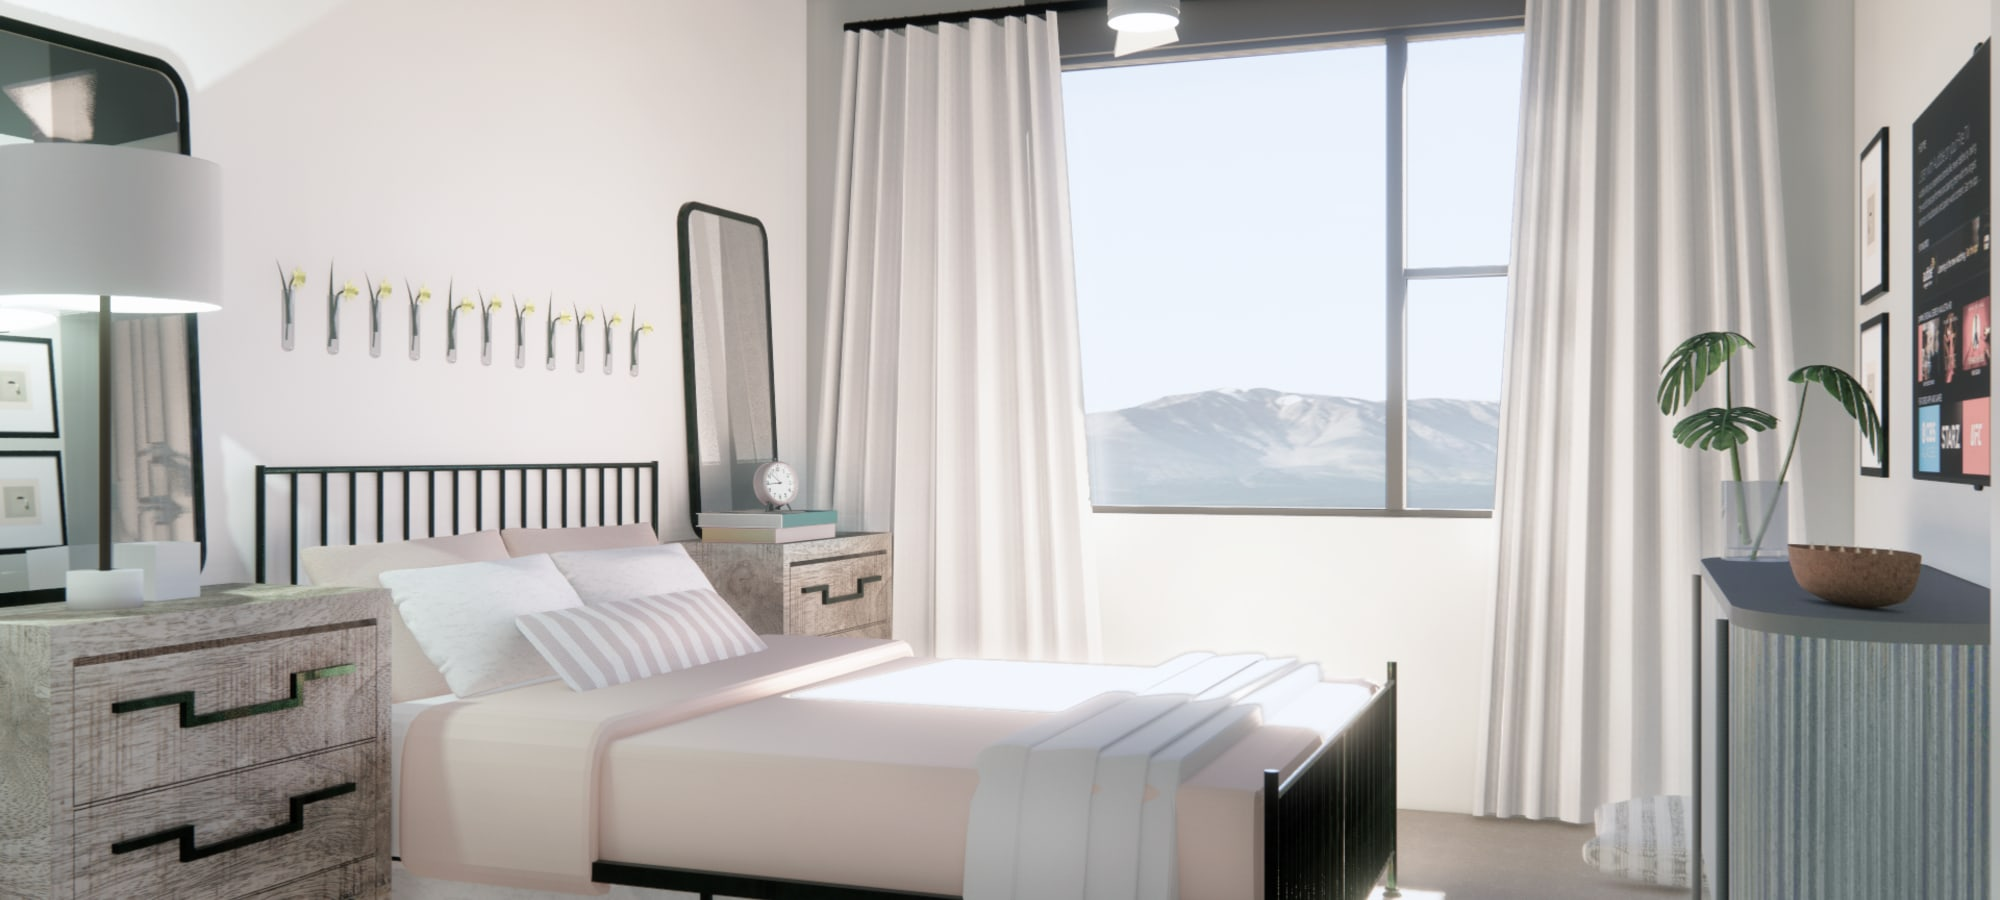 Second bedroom rendering at The Piedmont in Tempe, Arizona